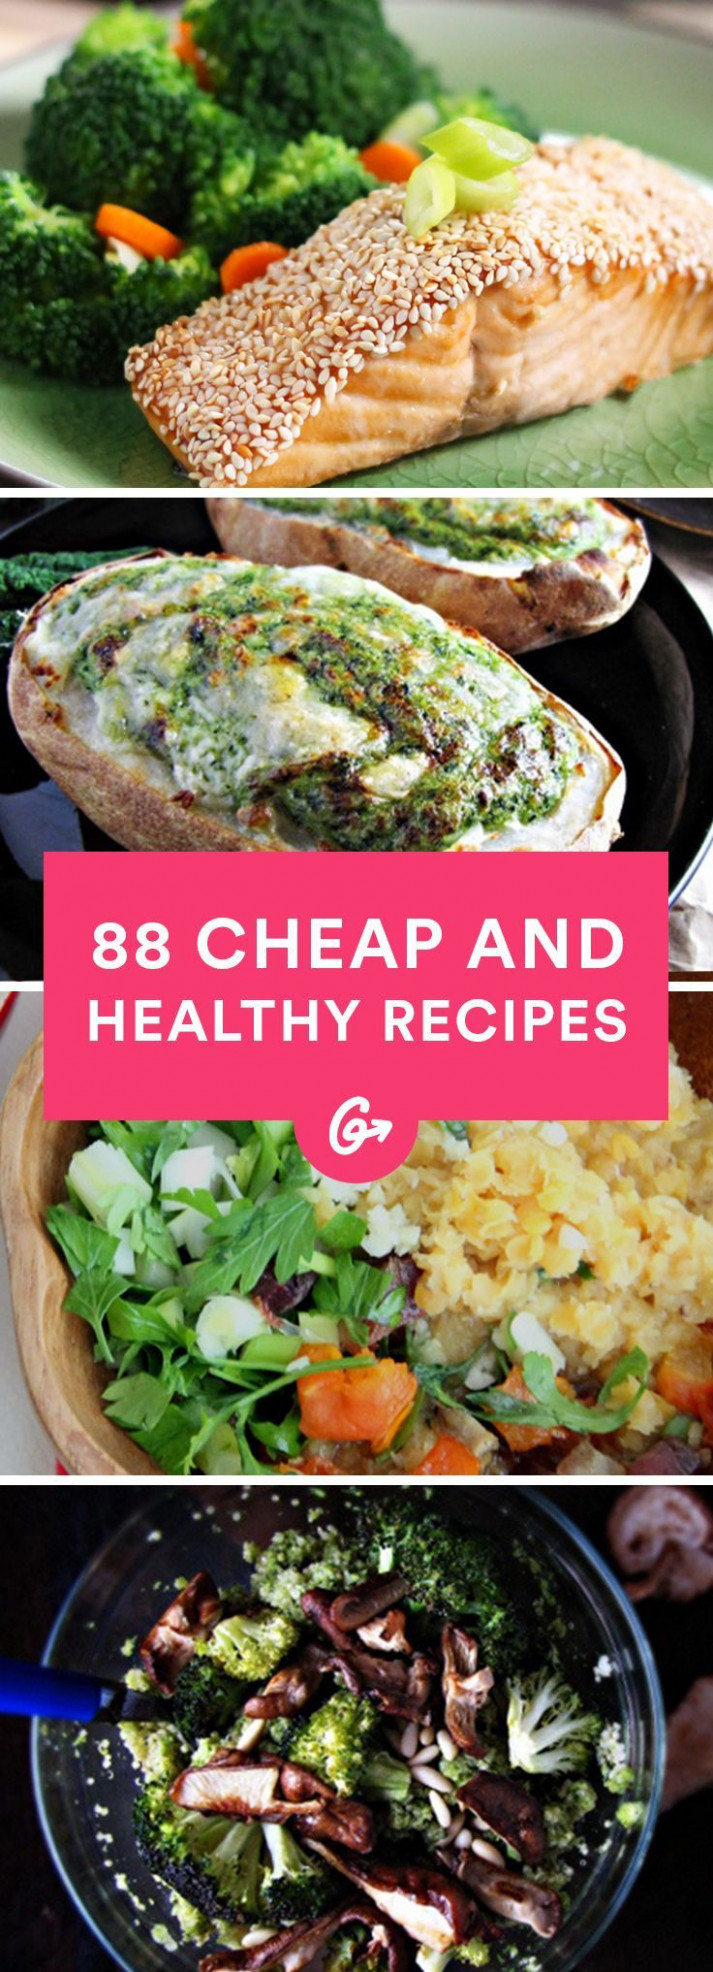 88 Cheap and Healthy Lunch and Dinner Recipes | Healthy ..